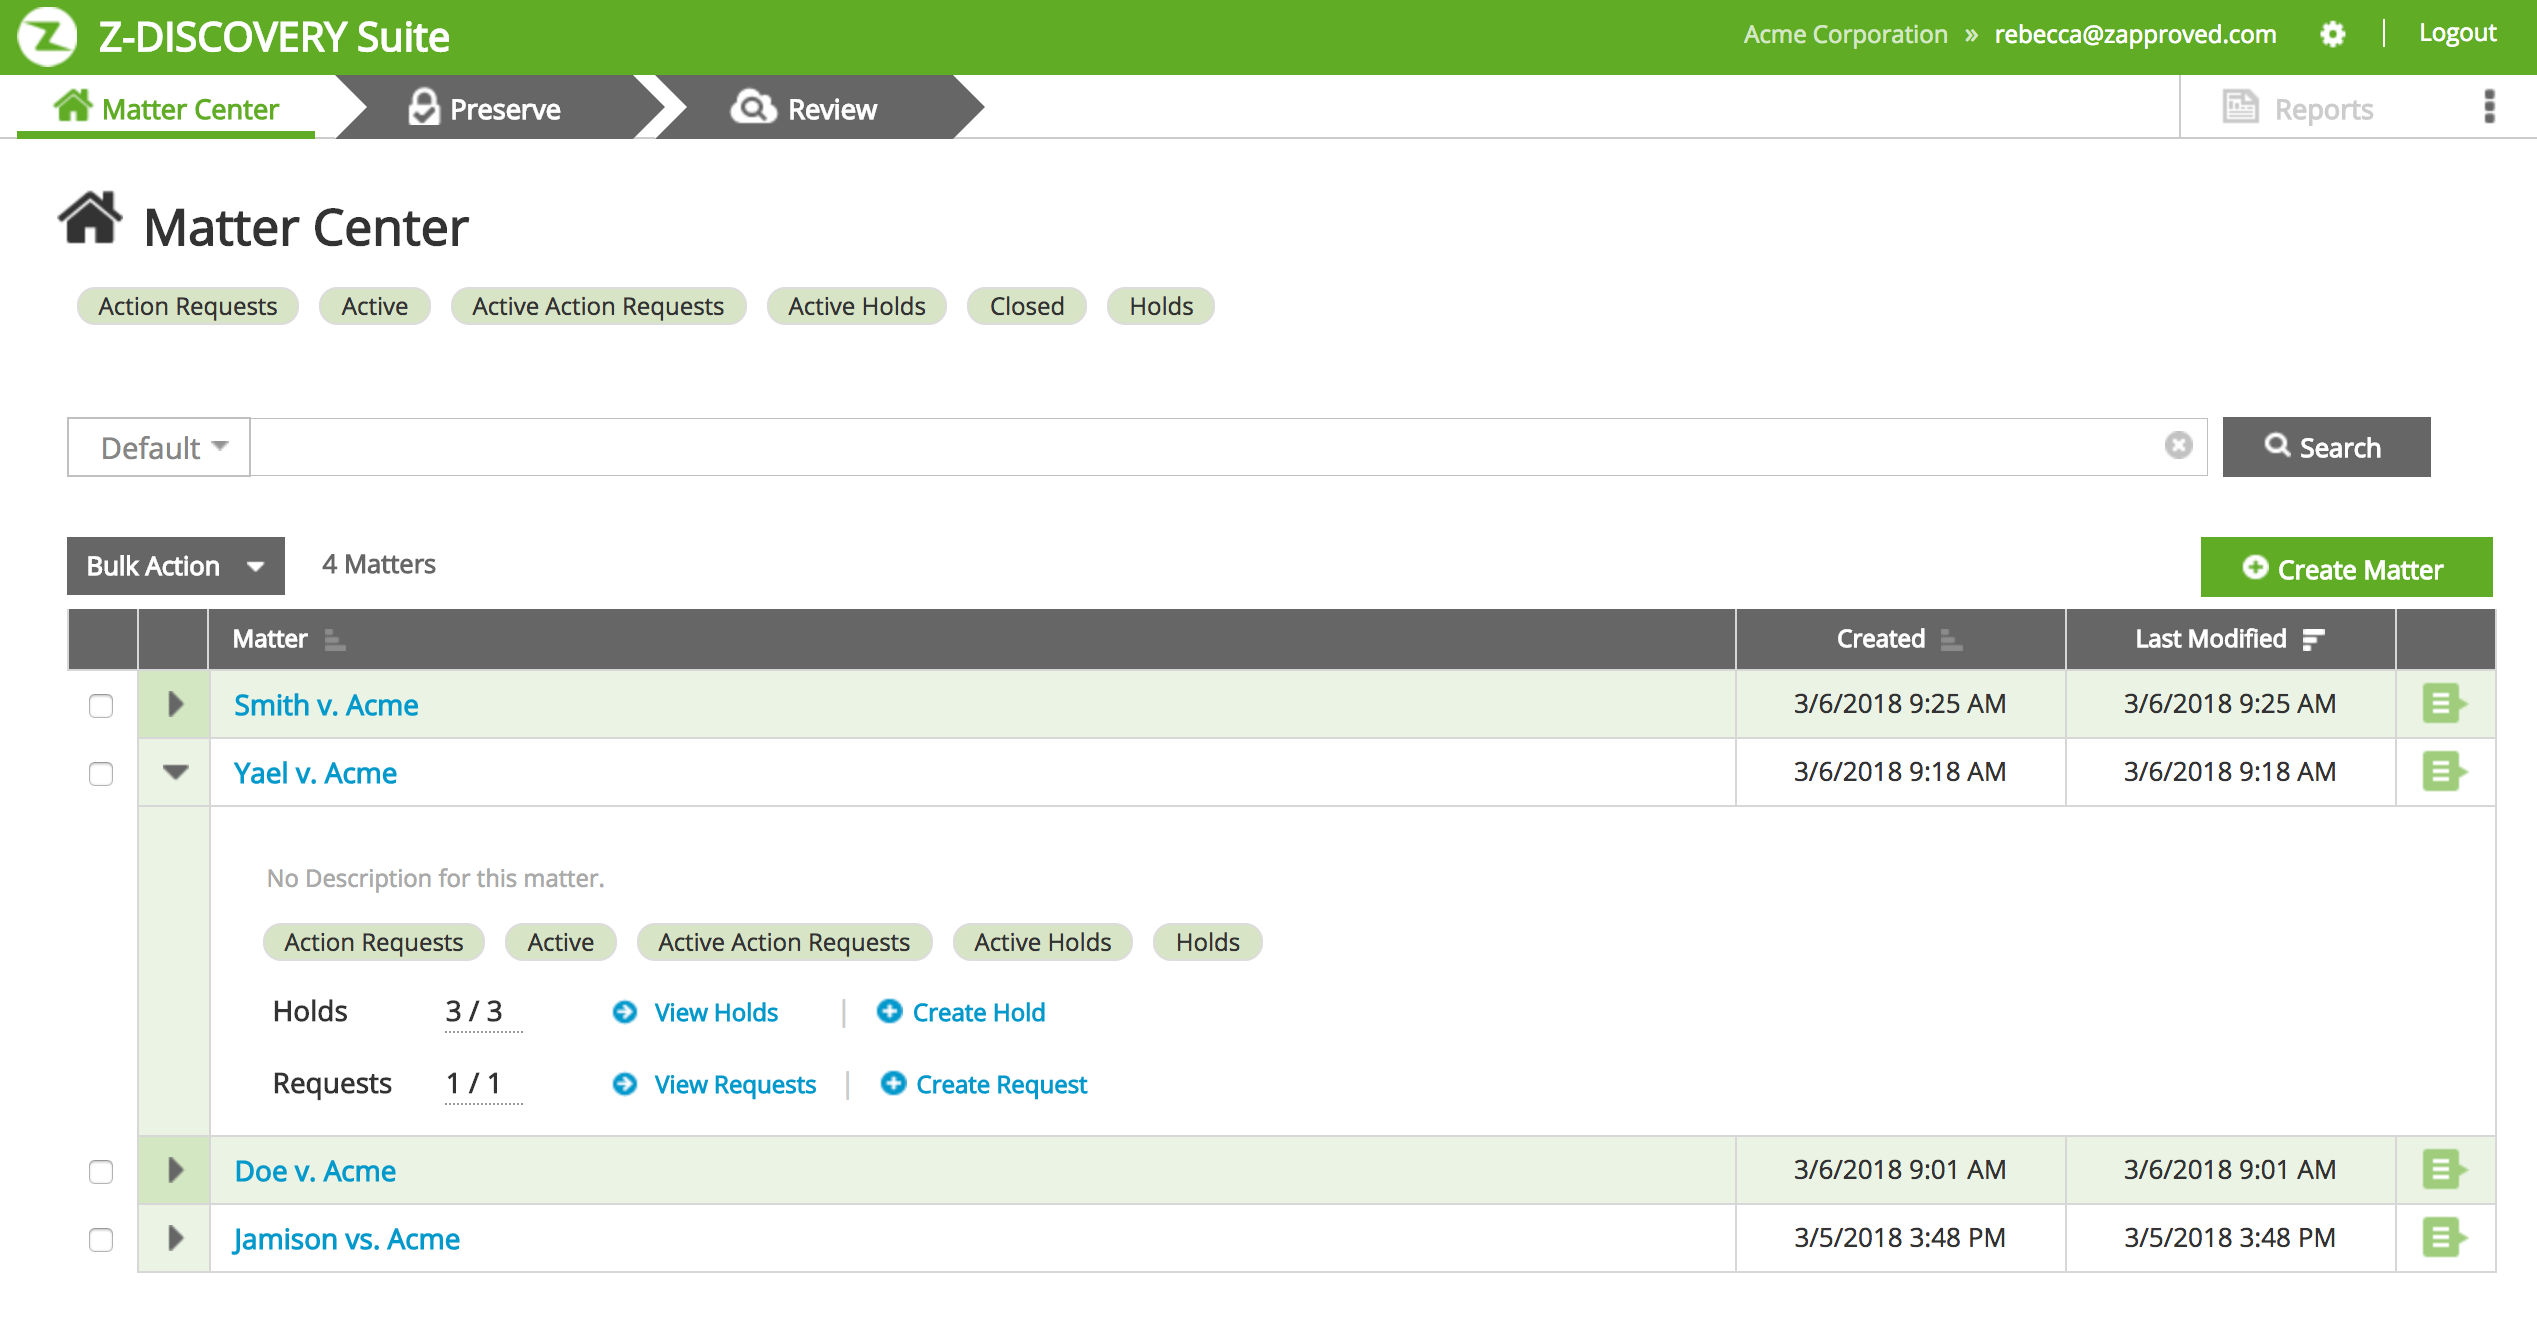 Z-Discovery screenshot: Manage litigation matters in a secure, online system.